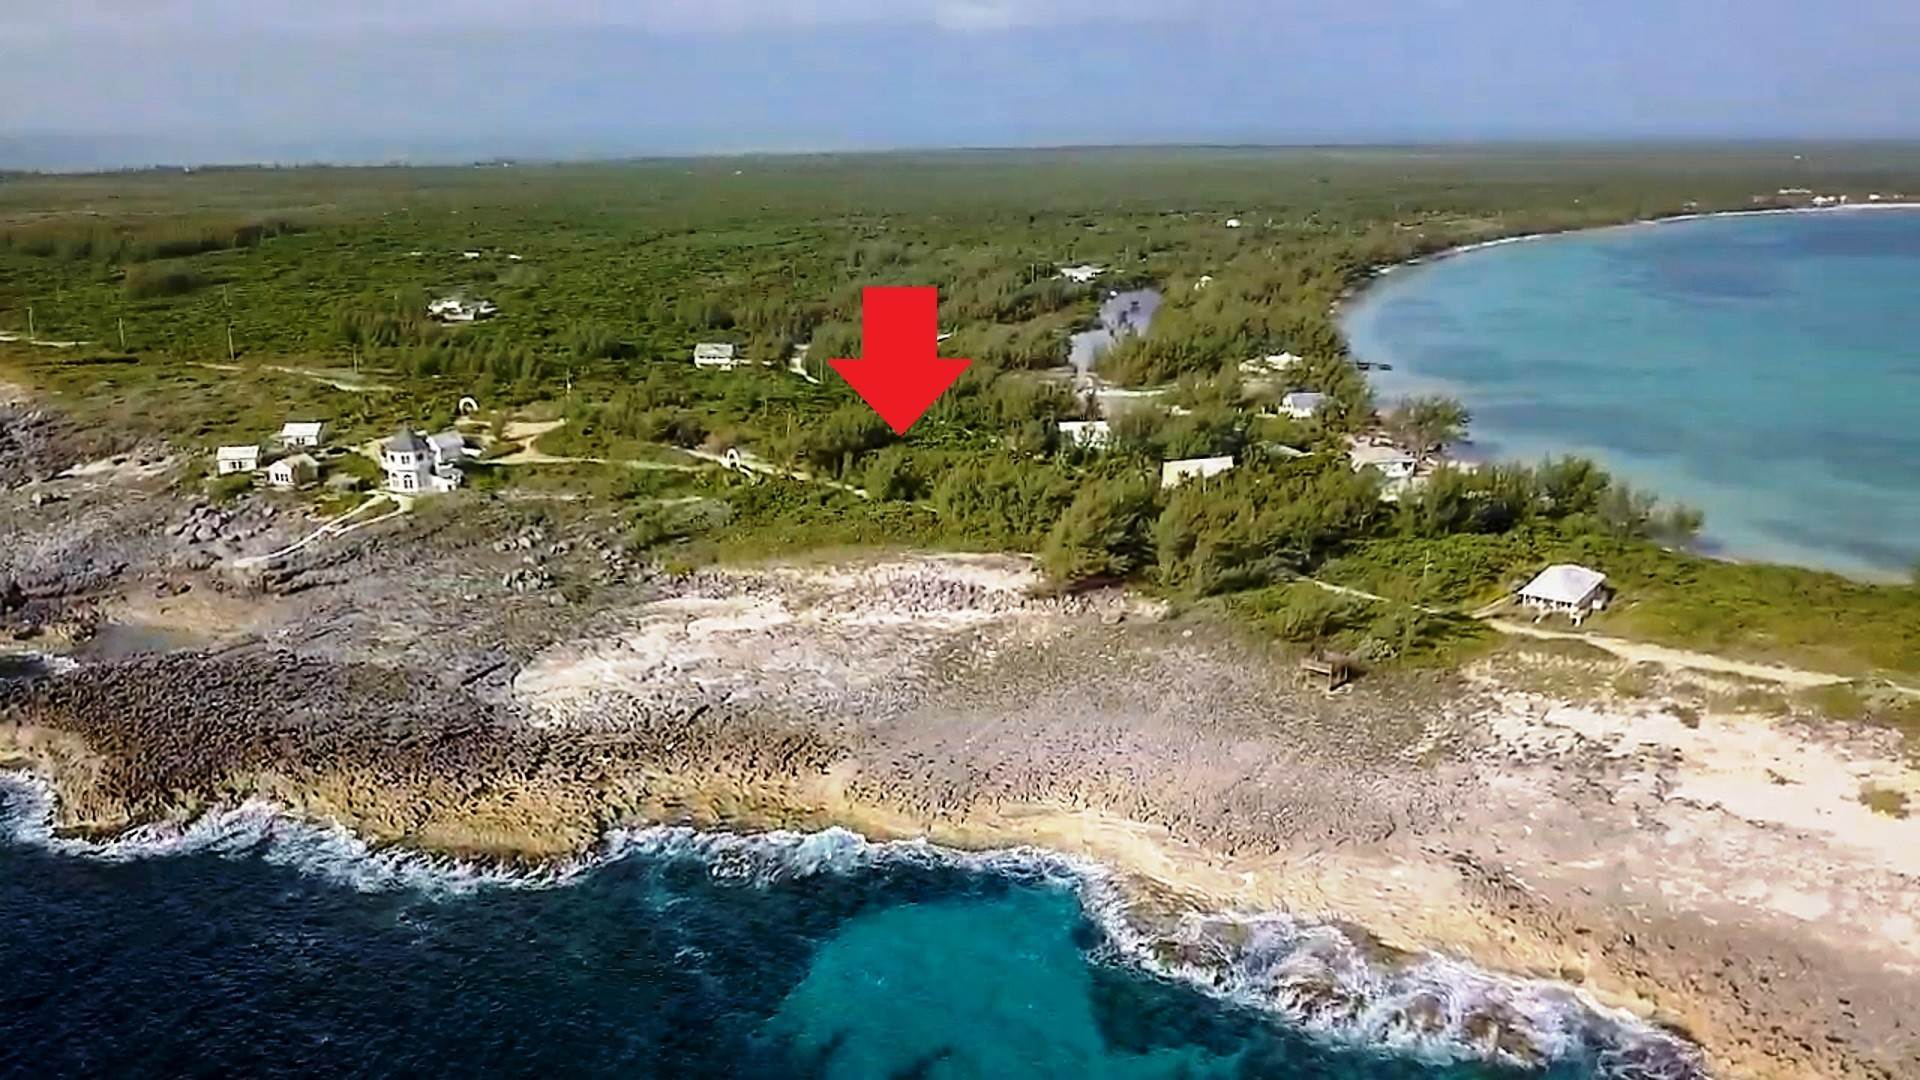 Land for Sale at BOTTOM HARBOUR WHALE POINT ELEUTHERA - MLS34754 Whale Point, Eleuthera, Bahamas